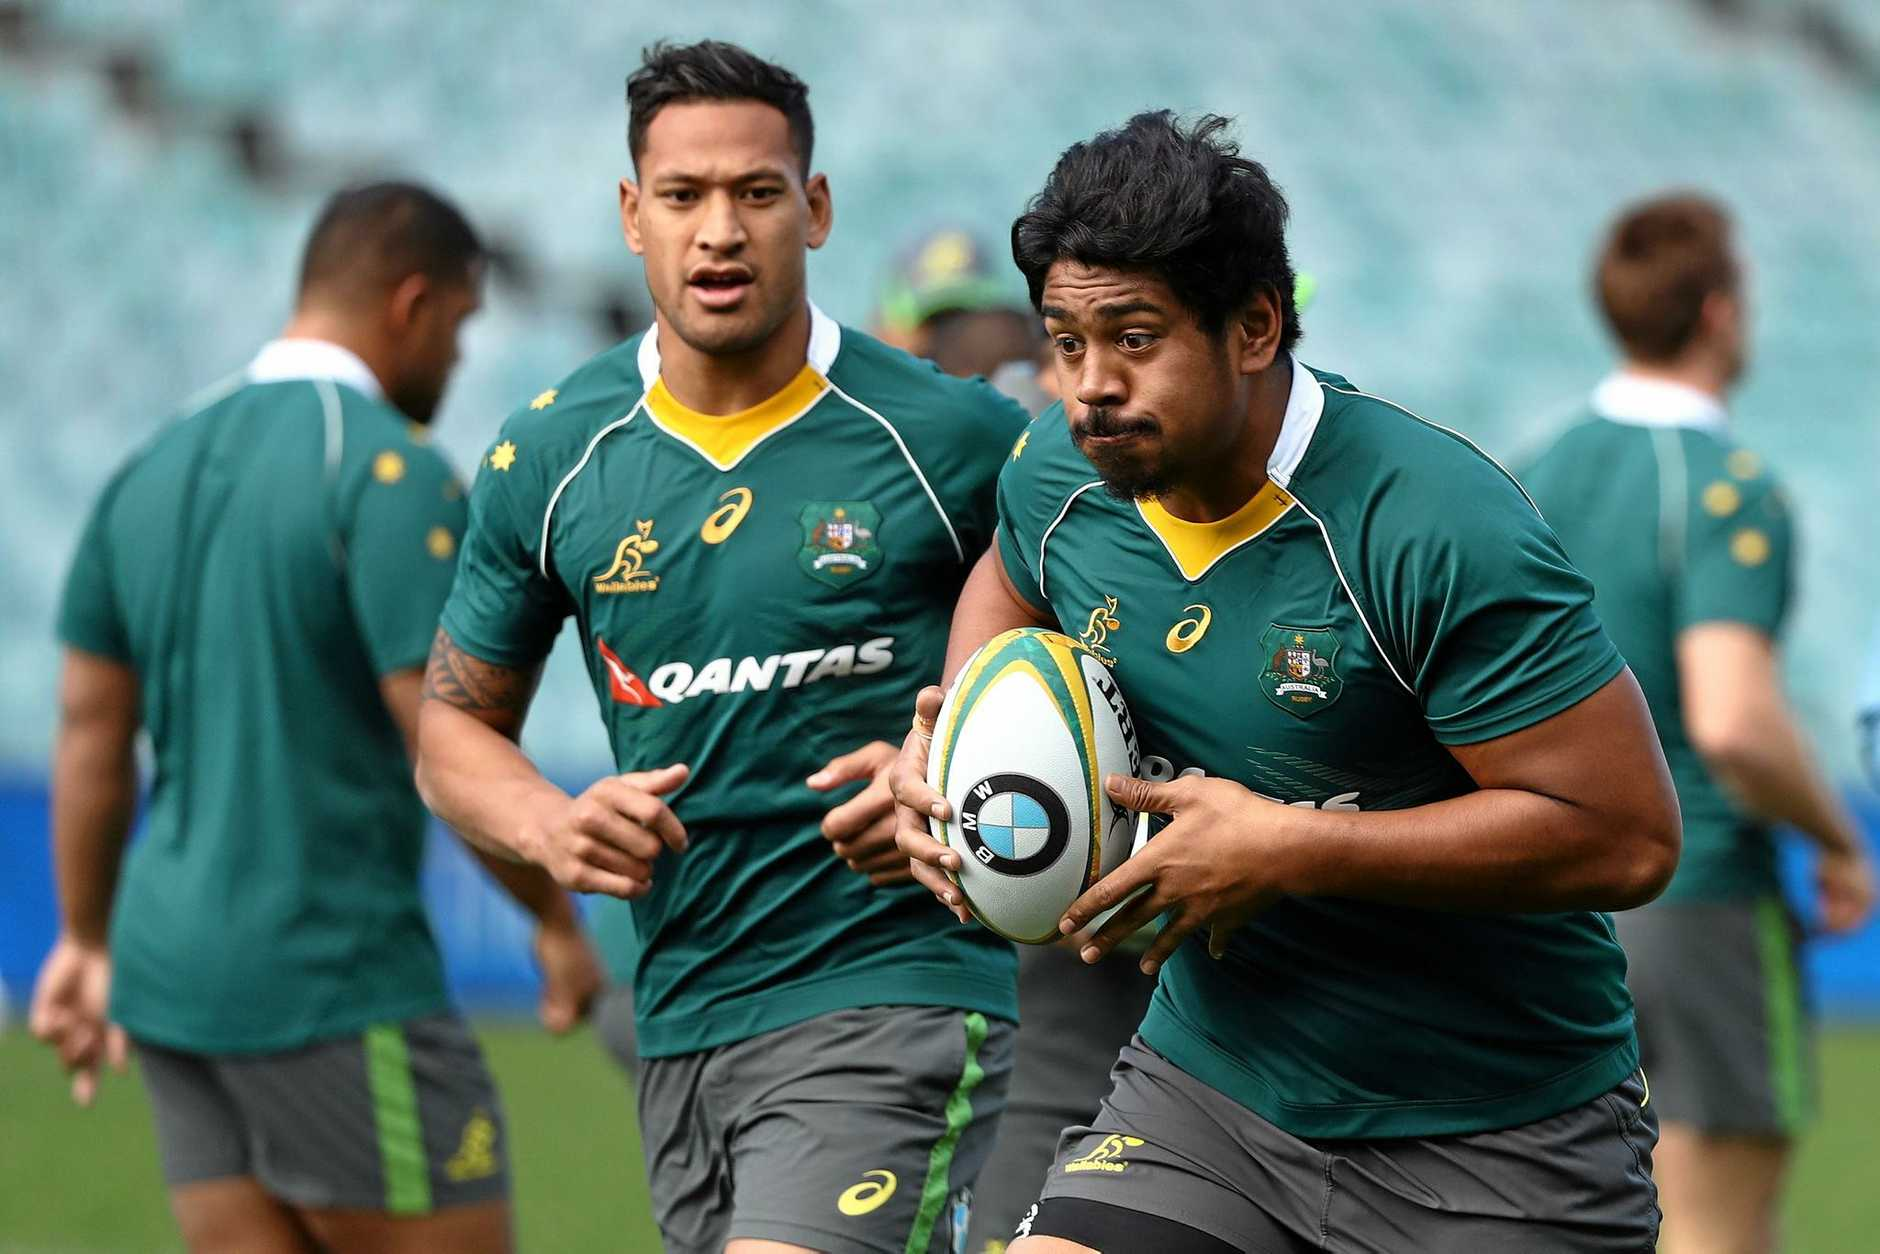 FINE TUNING: Recalled Wallaby Will Skelton (right) and Israel Folau go through their paces in a training session at Allianz Stadium.